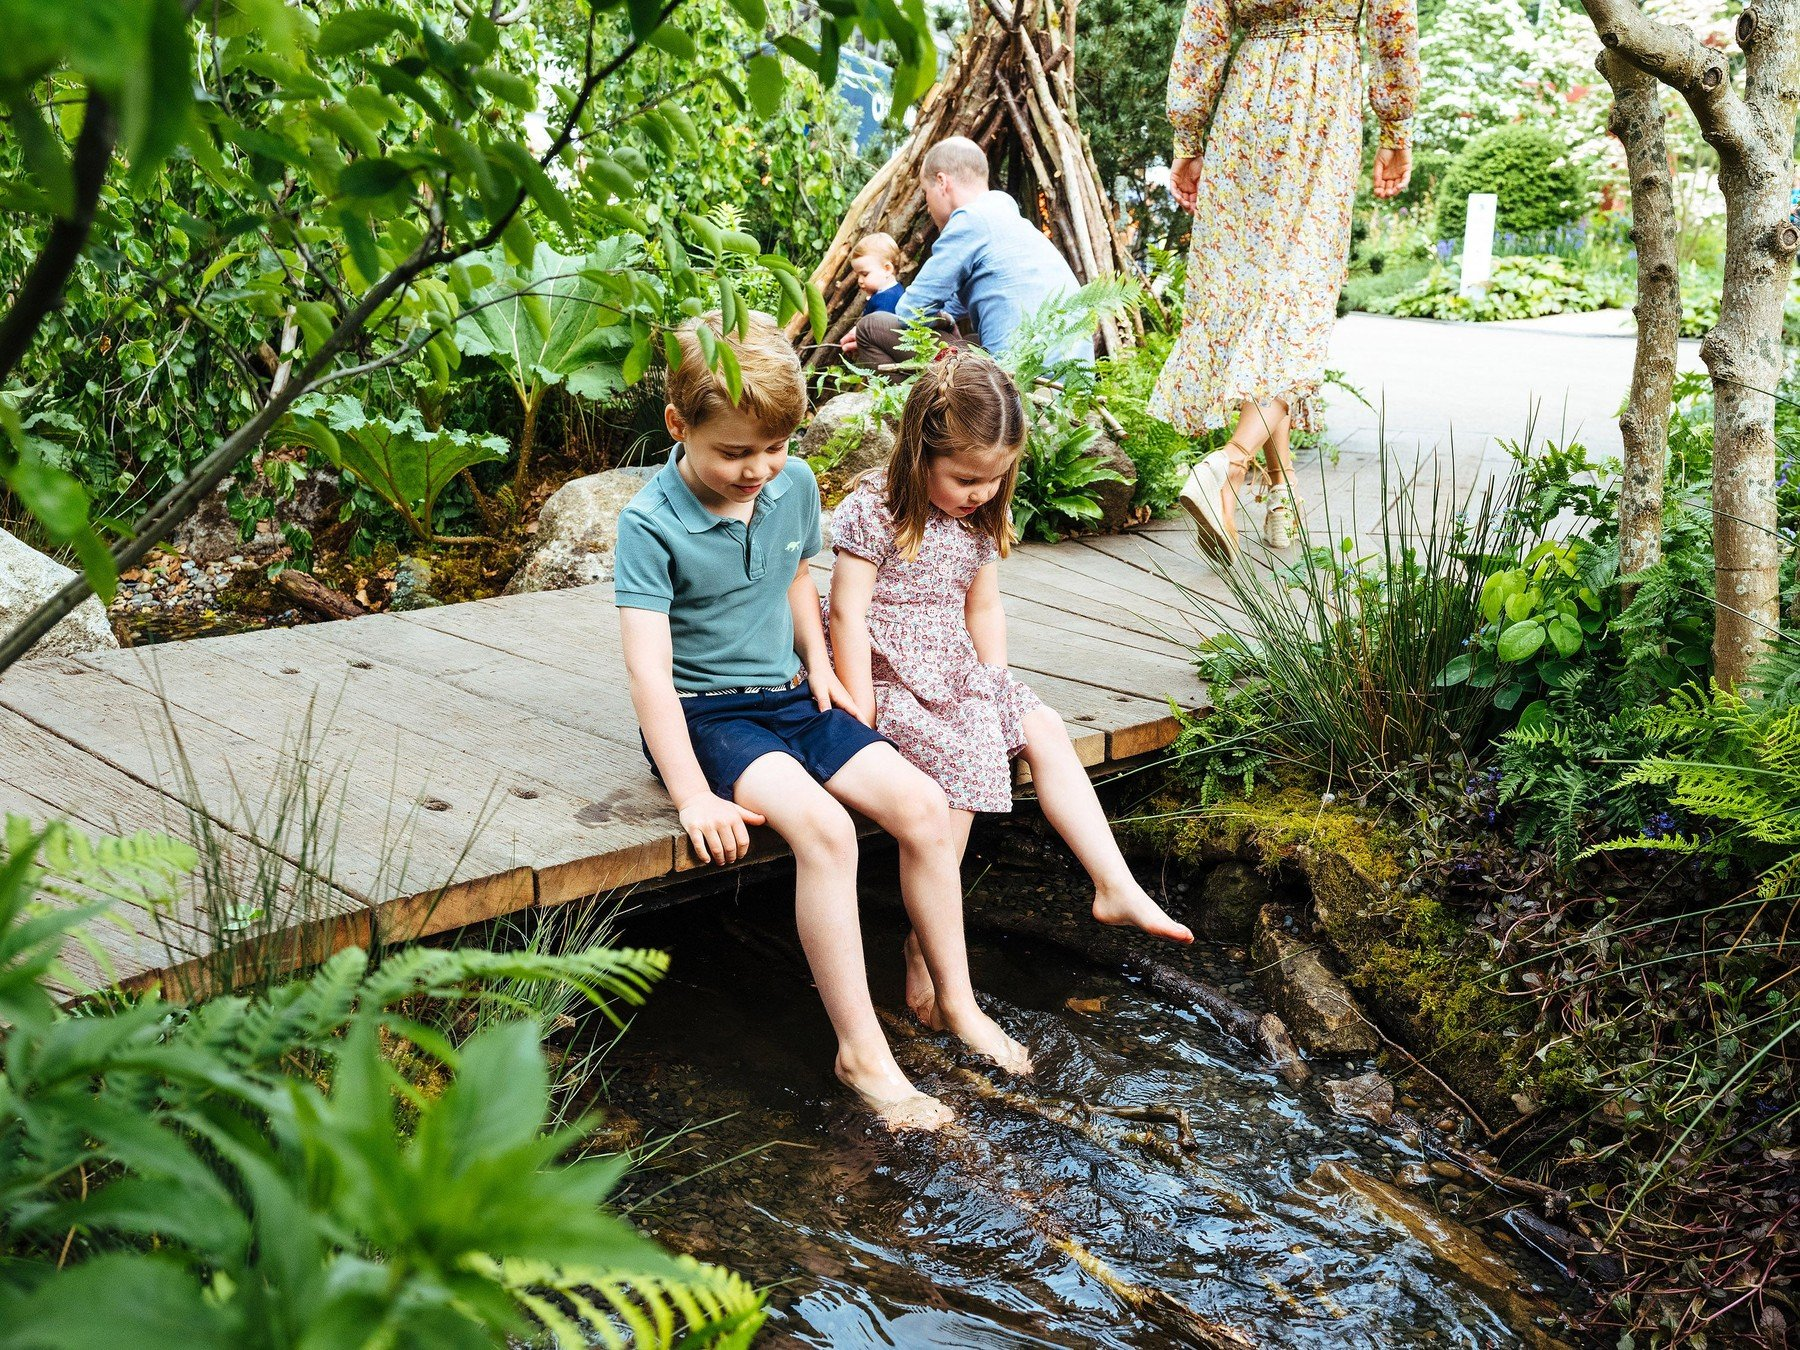 **STRICTLY EMBARGOED UNTIL 2230 BST SUNDAY MAY 19**  The Duke and Duchess of Cambridge, Prince George, Princess Charlotte and Prince Louis visit the Adam White and Andree Davies co-designed 'Back to Nature' garden during build week ahead of the RHS Chelsea Flower Show, London, UK, on the 19th May 2019.  Picture by Matt Porteous/WPA-Pool  **STRICTLY EMBARGOED TO 2230 BST SUNDAY MAY 19** EDITORIAL USE ONLY. 19 May 2019, Image: 434580718, License: Rights-managed, Restrictions: NO United Kingdom, Model Release: no, Credit line: Profimedia, Mega Agency